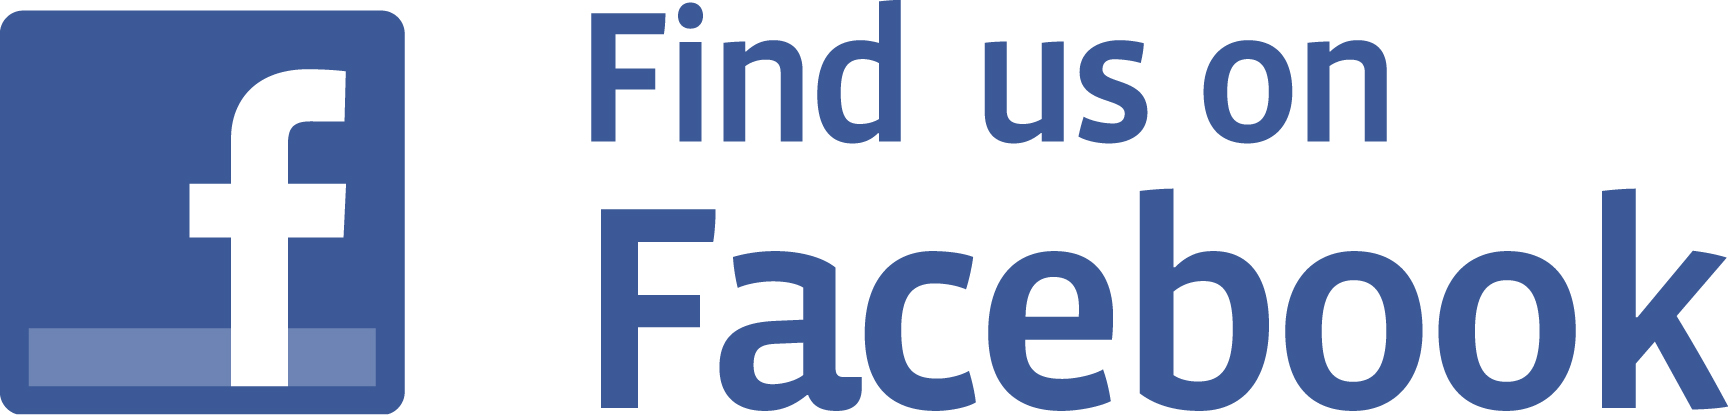 Find_Us_Facebook